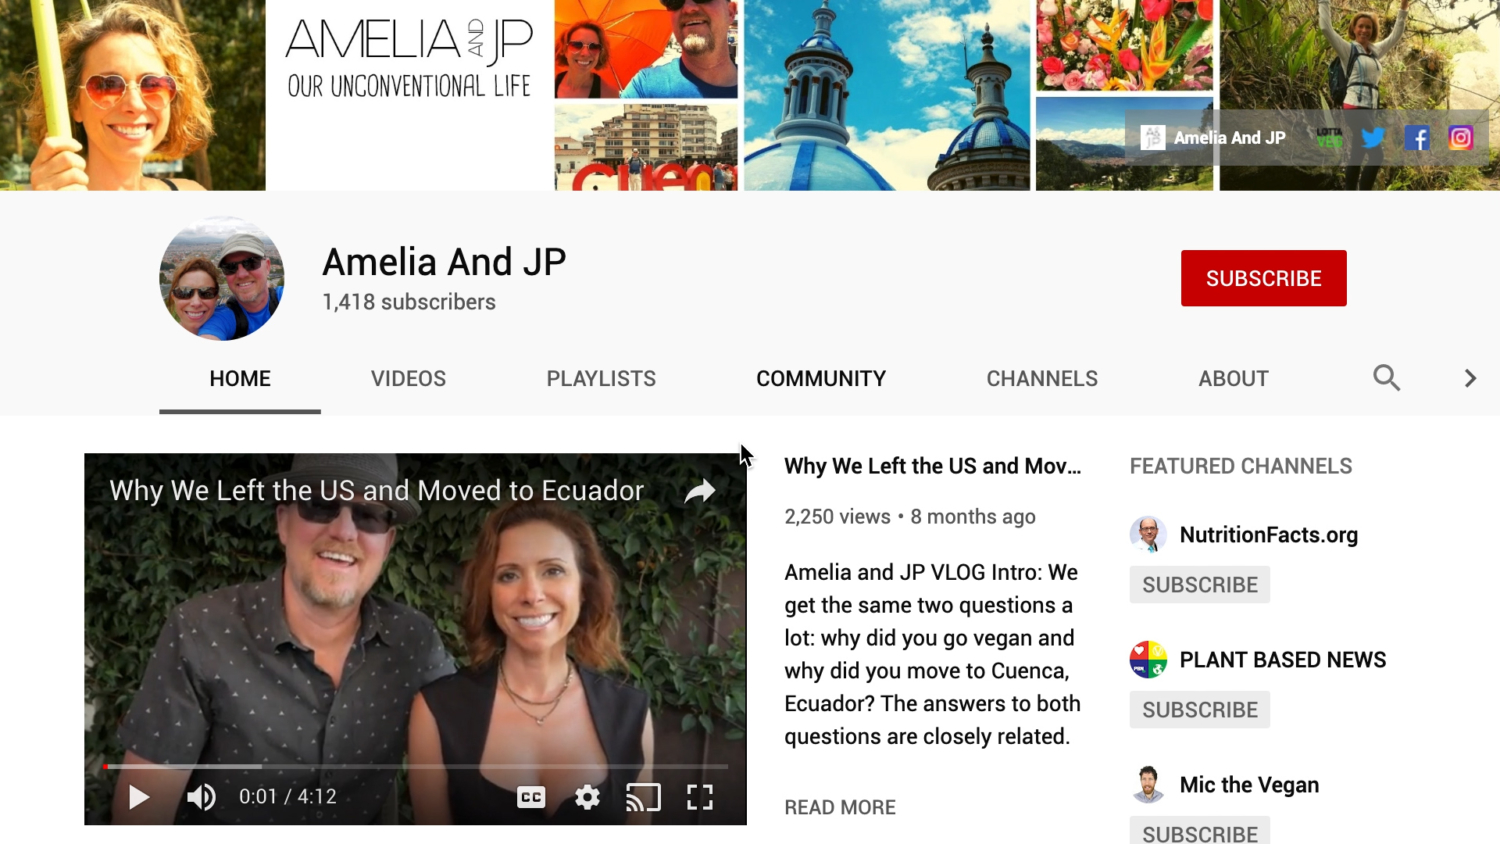 Amelia And JP YouTube Channel